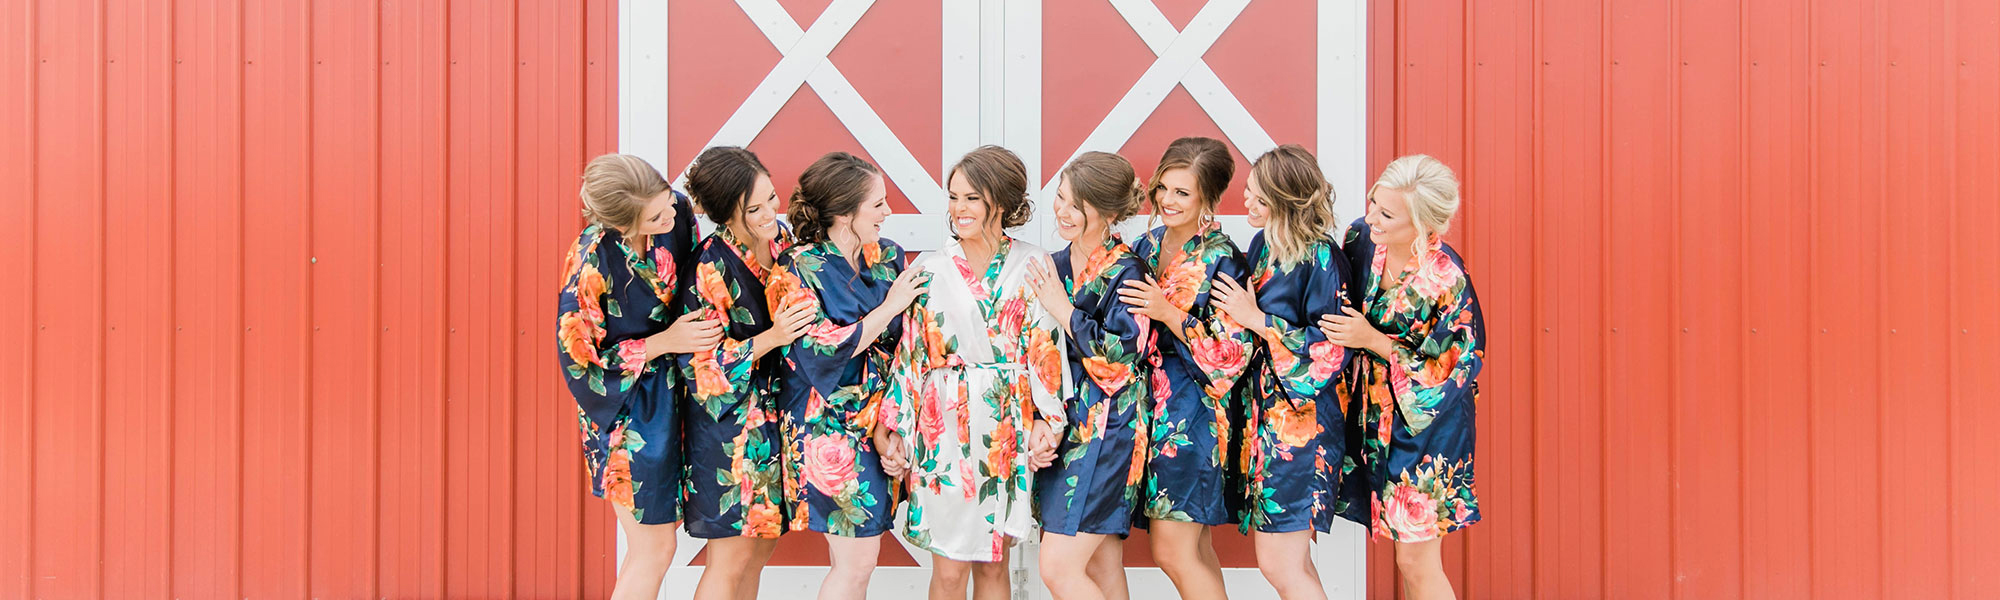 bridal party in front of barn doors